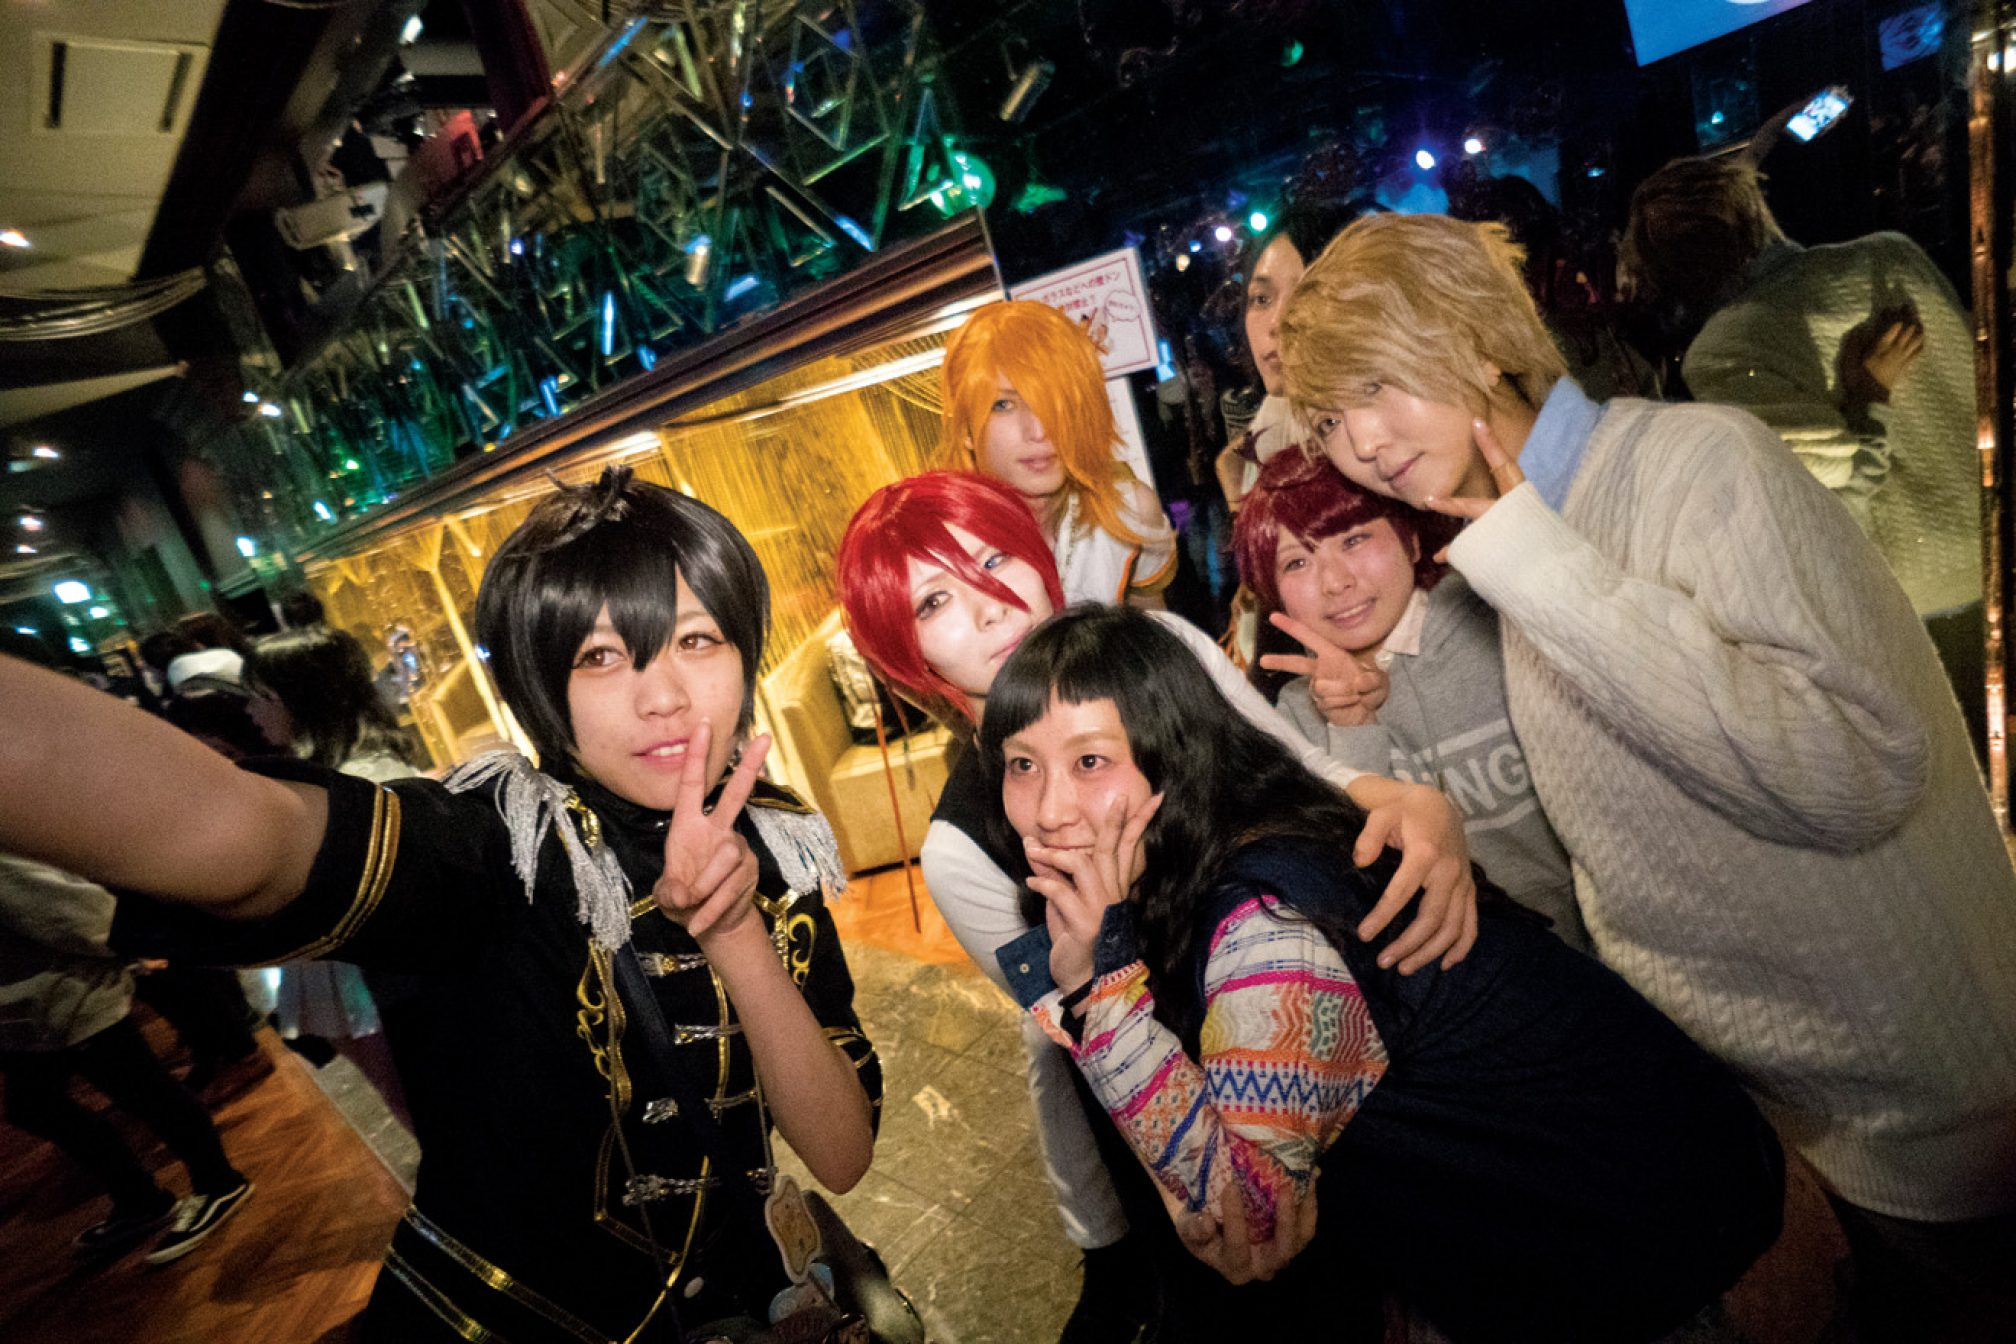 Japan's anime club scene is about more than just cosplay and